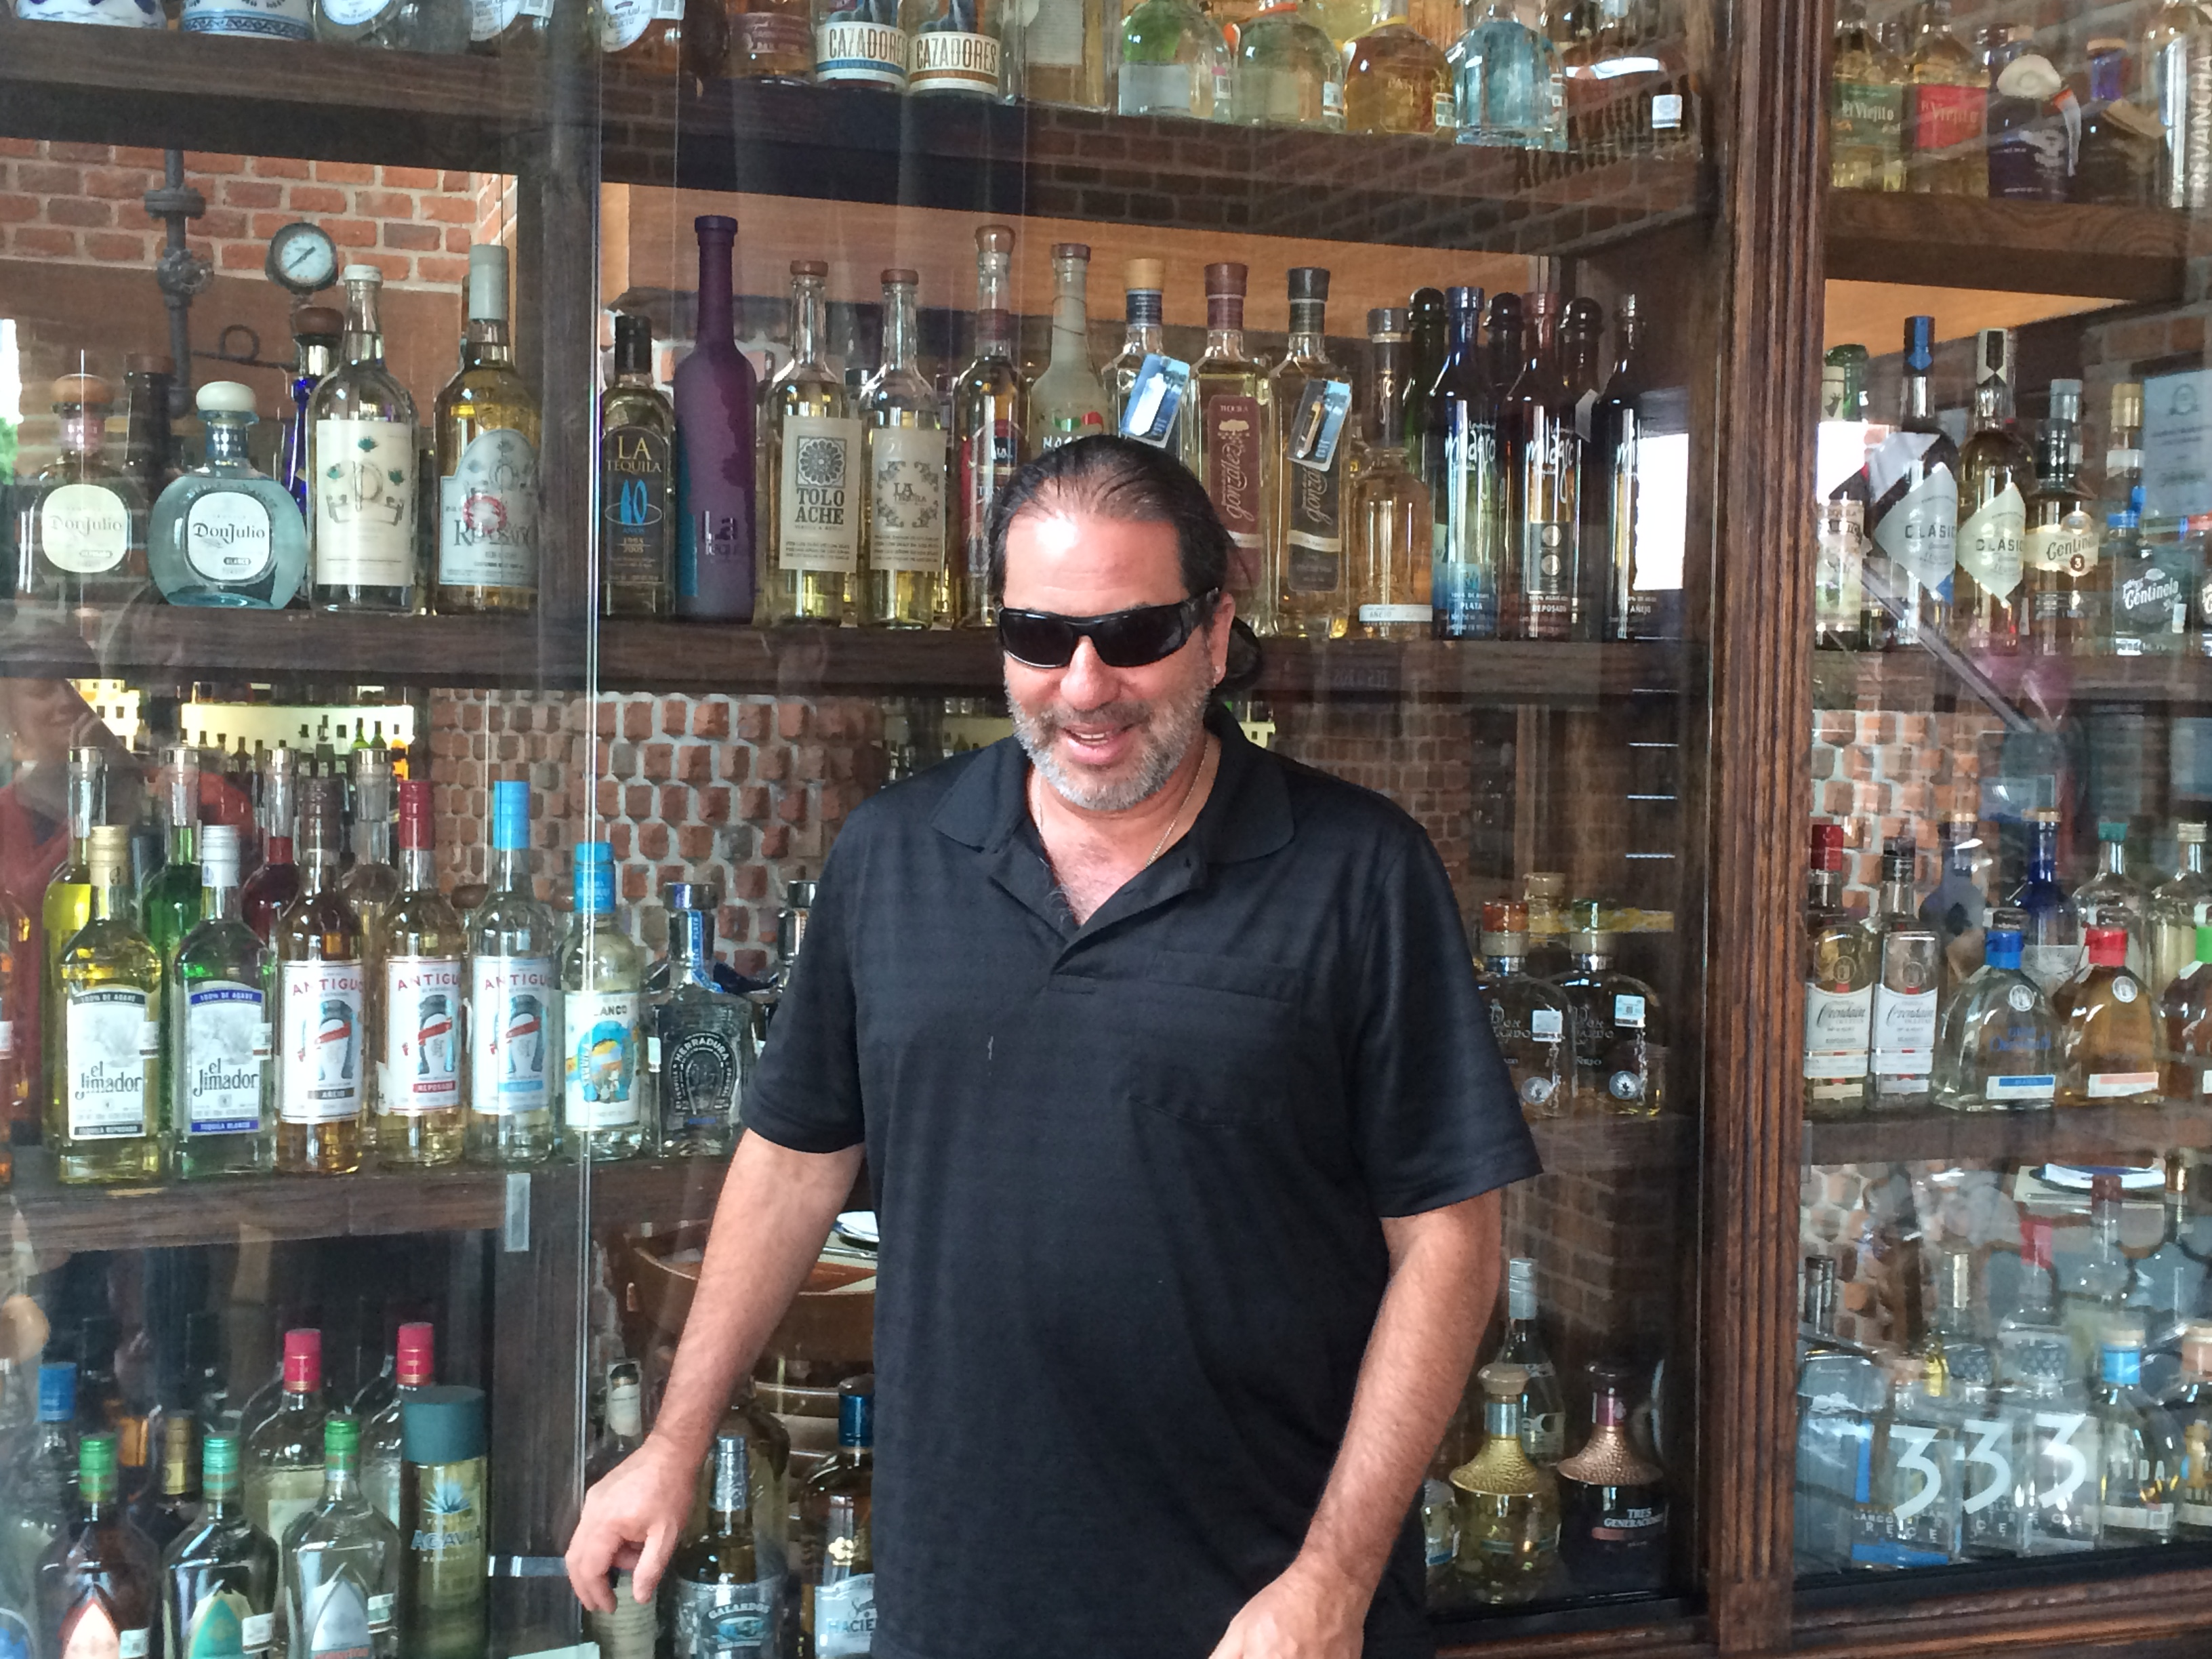 Alan in front of all the tequila at LaTequila